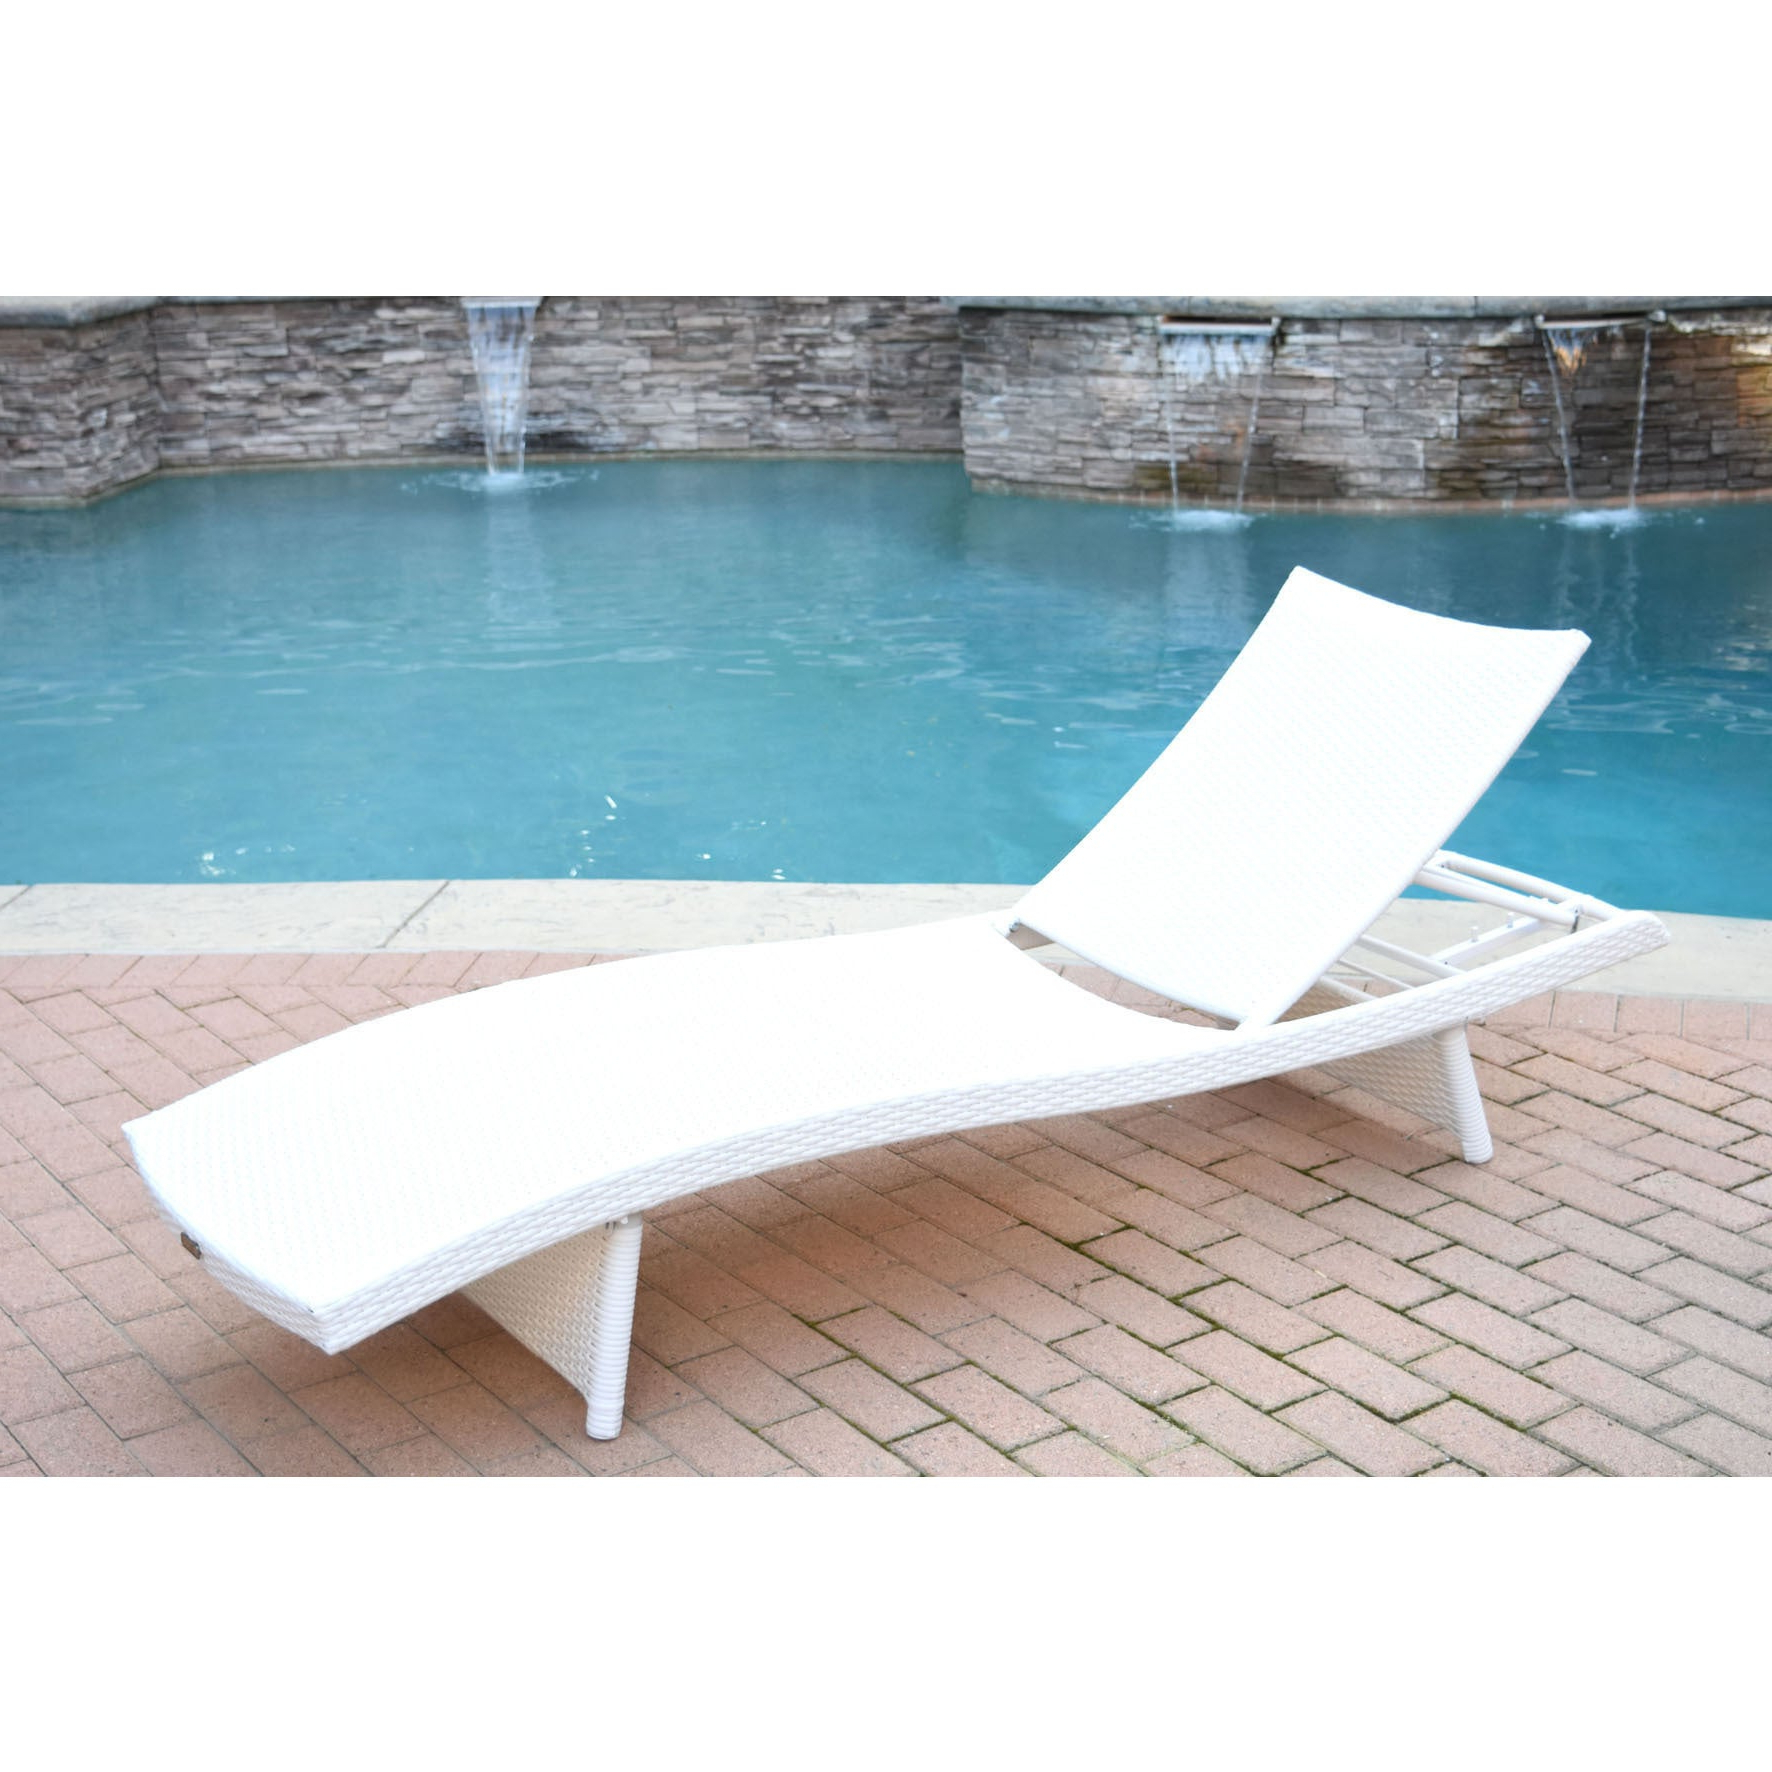 White Wicker Adjustable Chaise Loungers With Cushions Throughout 2019 White Wicker Adjustable Chaise Lounger With Cushions (View 22 of 25)